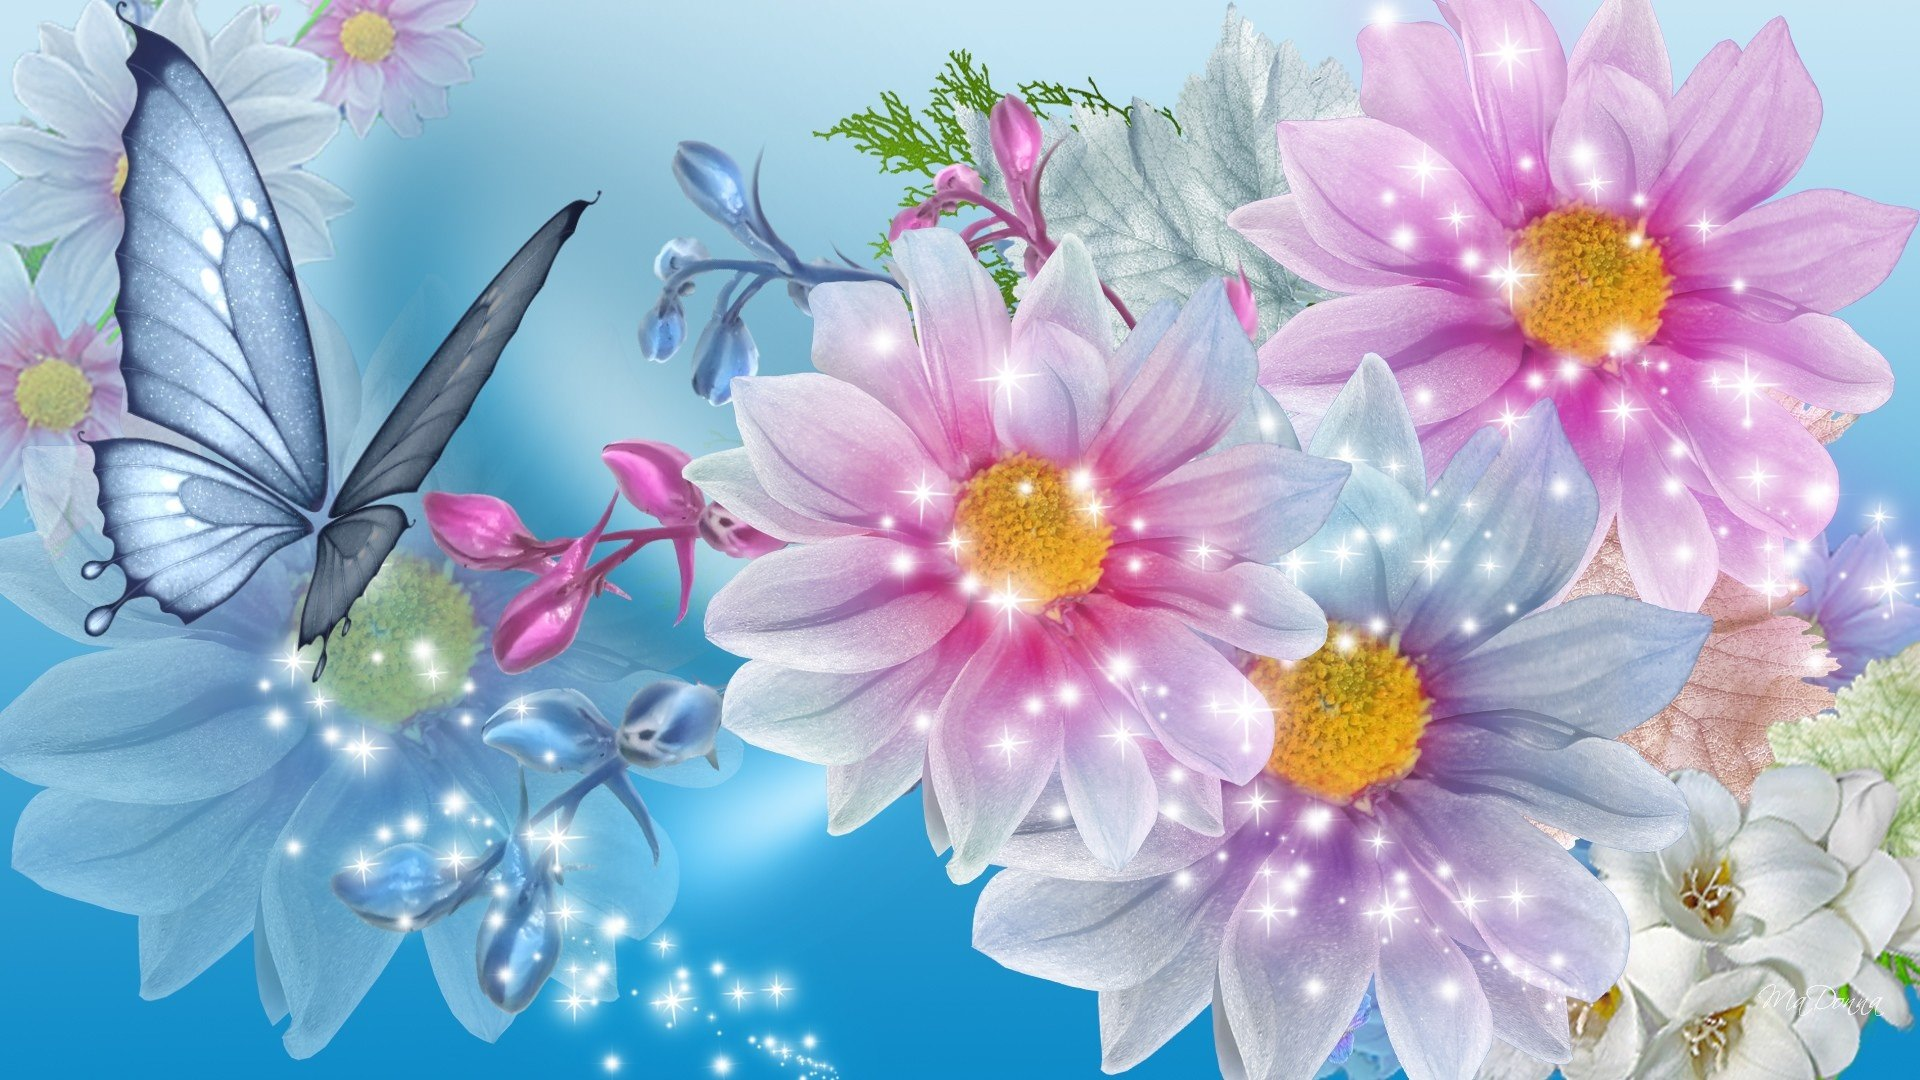 169+ Flower Backgrounds, Wallpapers, Pictures, Images | Design ...